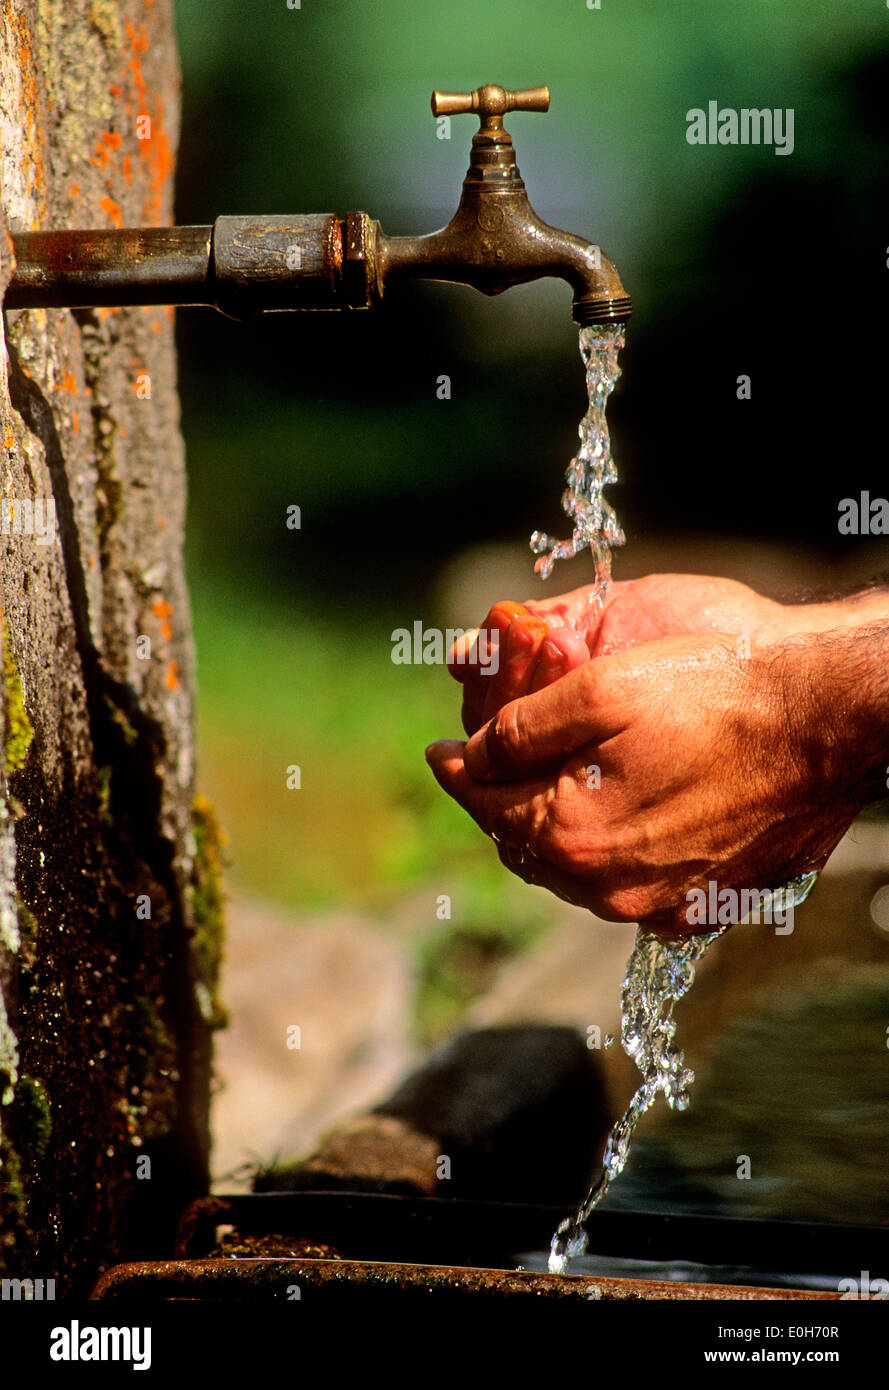 Washing hands at an outside tap in the garden - Stock Image